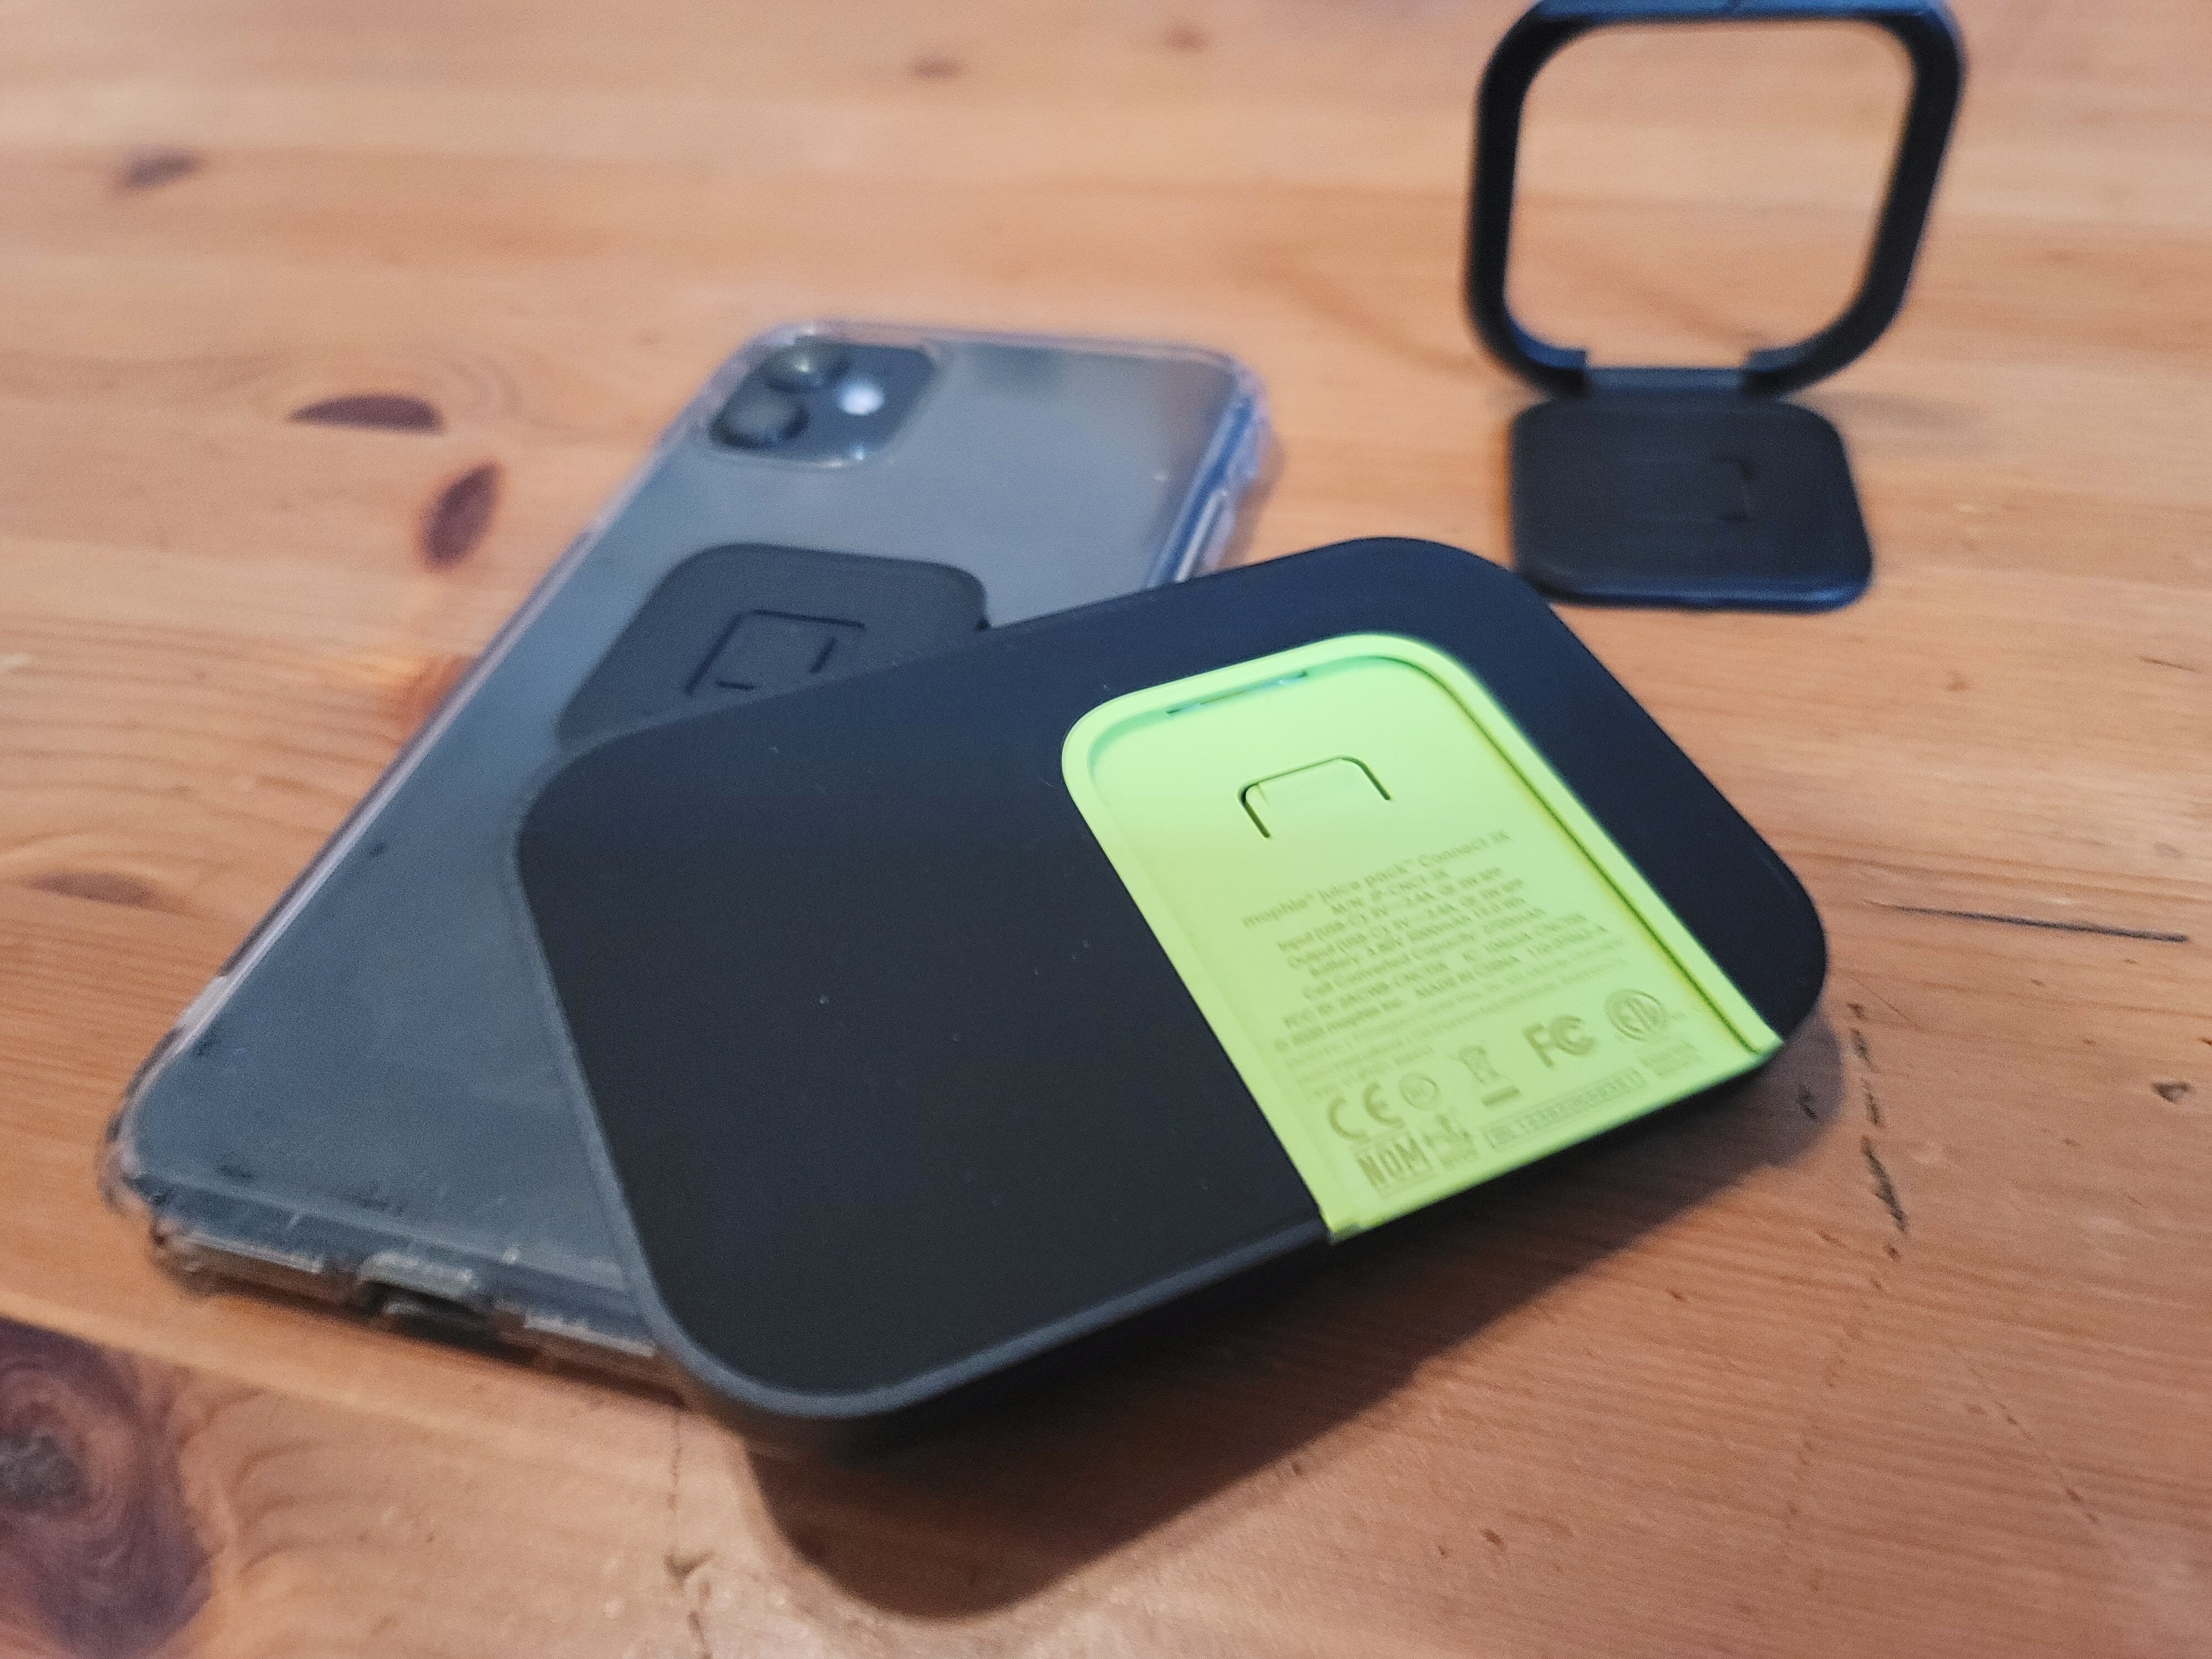 Hands-on with Mophie's new modular smartphone battery case 2